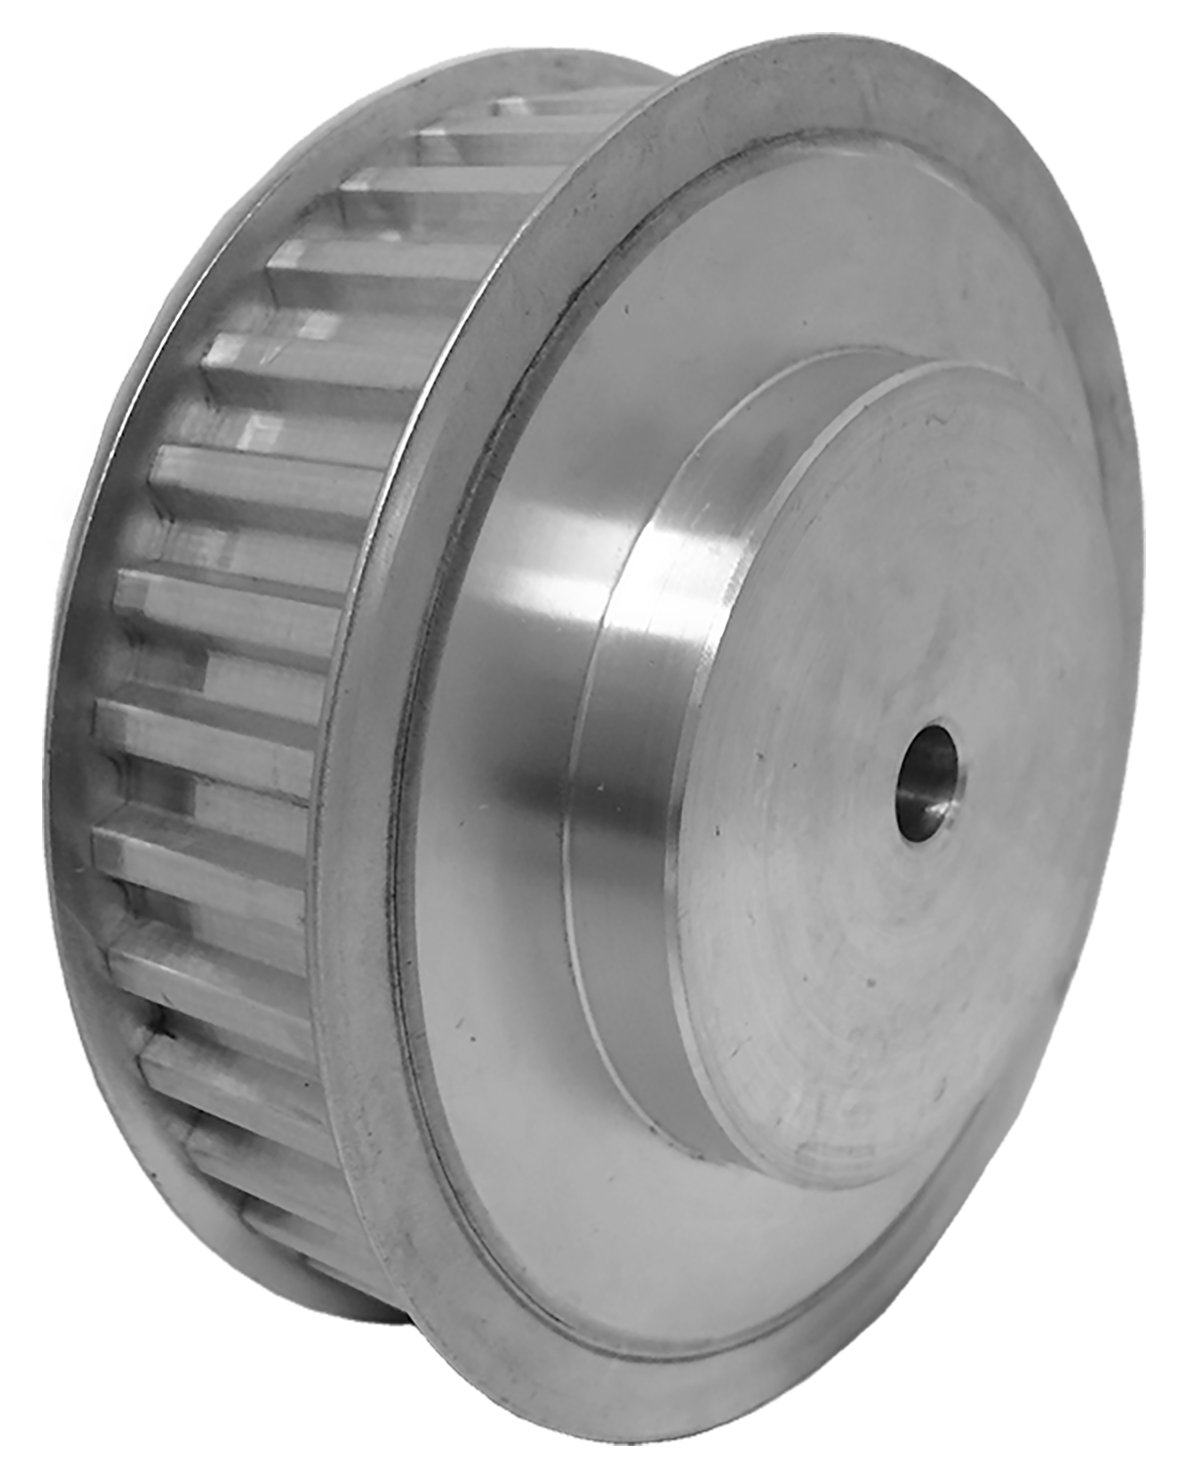 40T10/36-2 - Aluminum Metric Pulleys